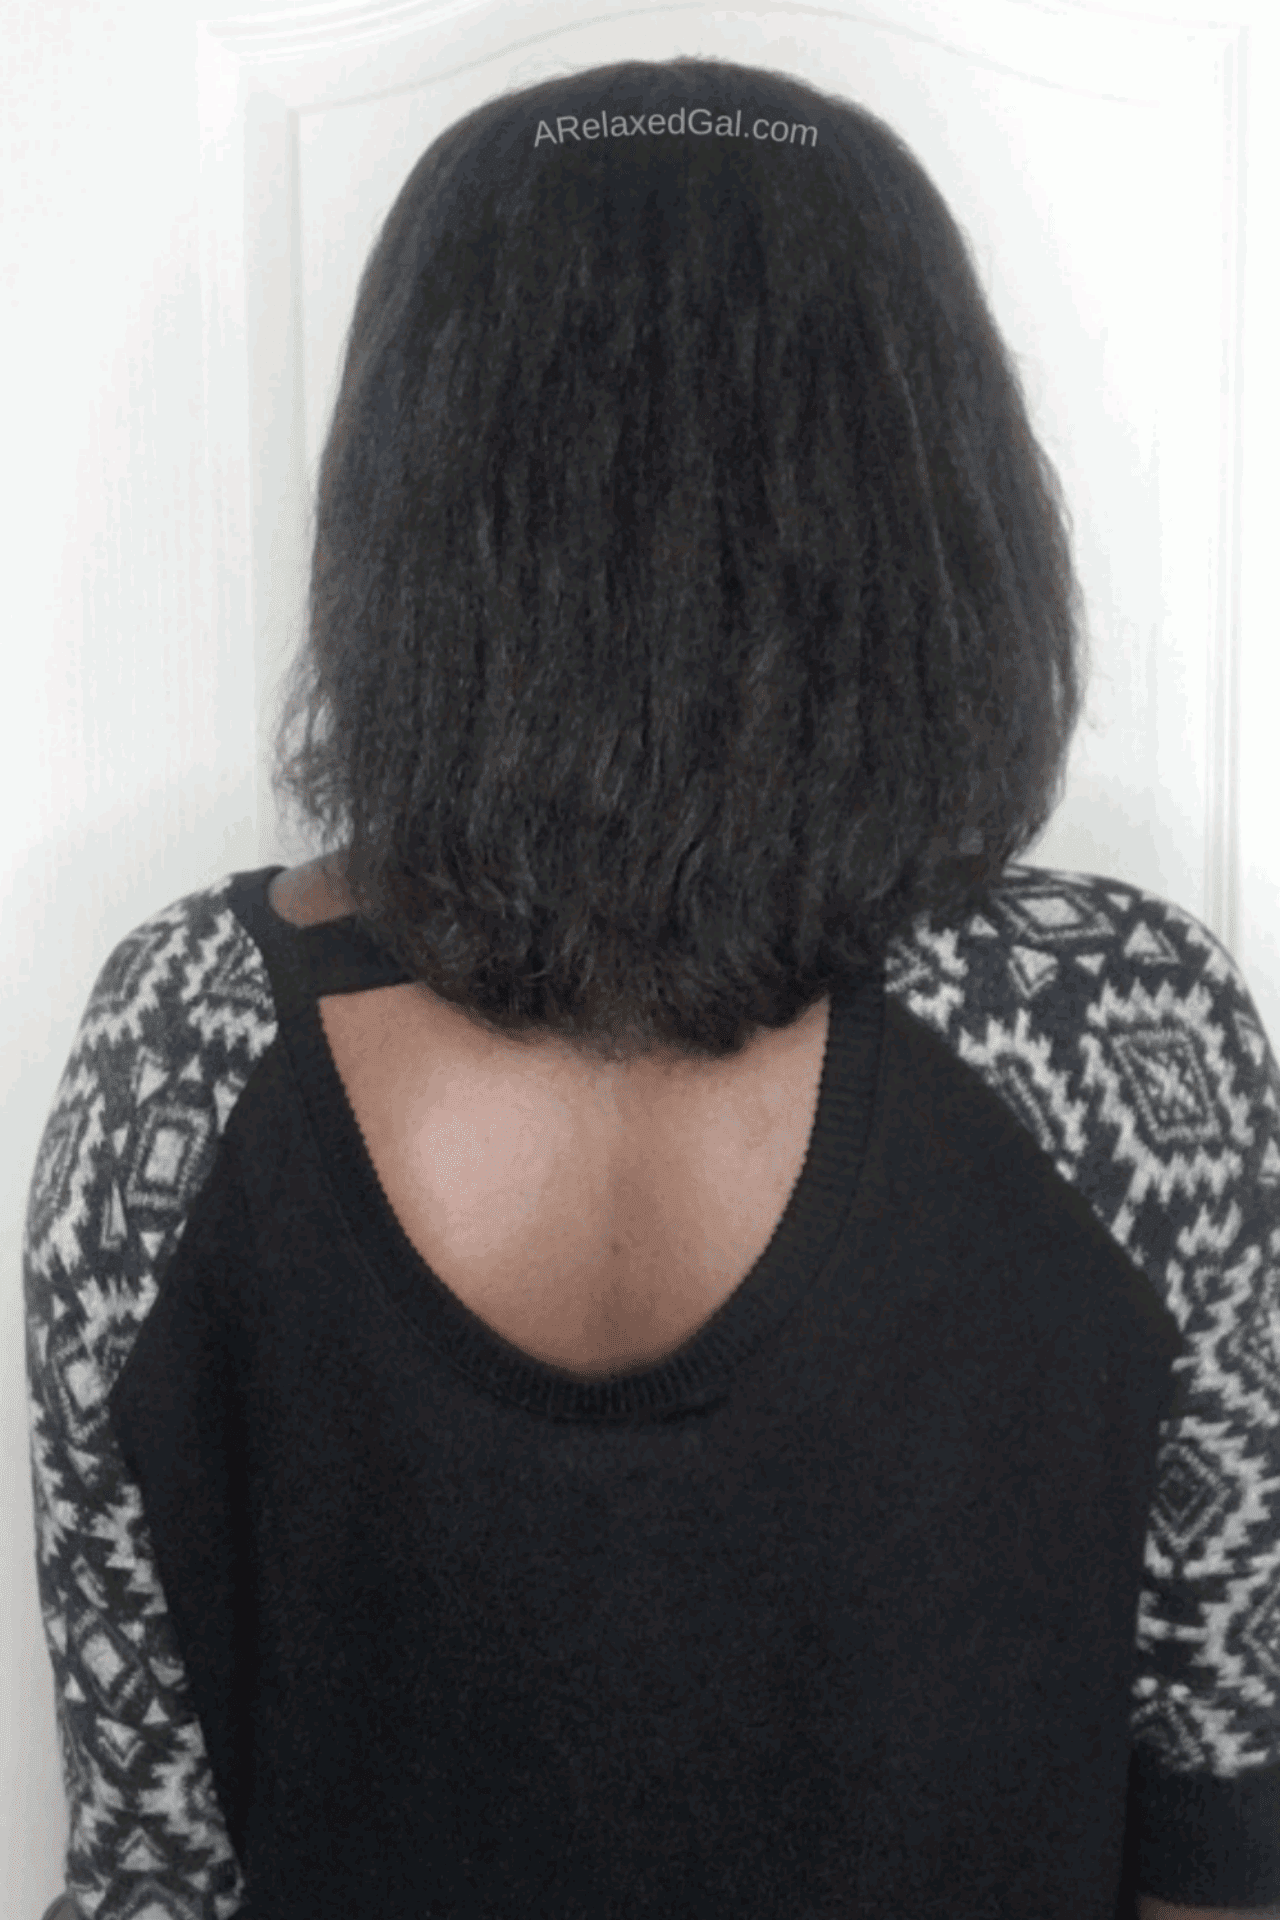 Dealing With Under-processed Relaxed Hair | A Relaxed Gal